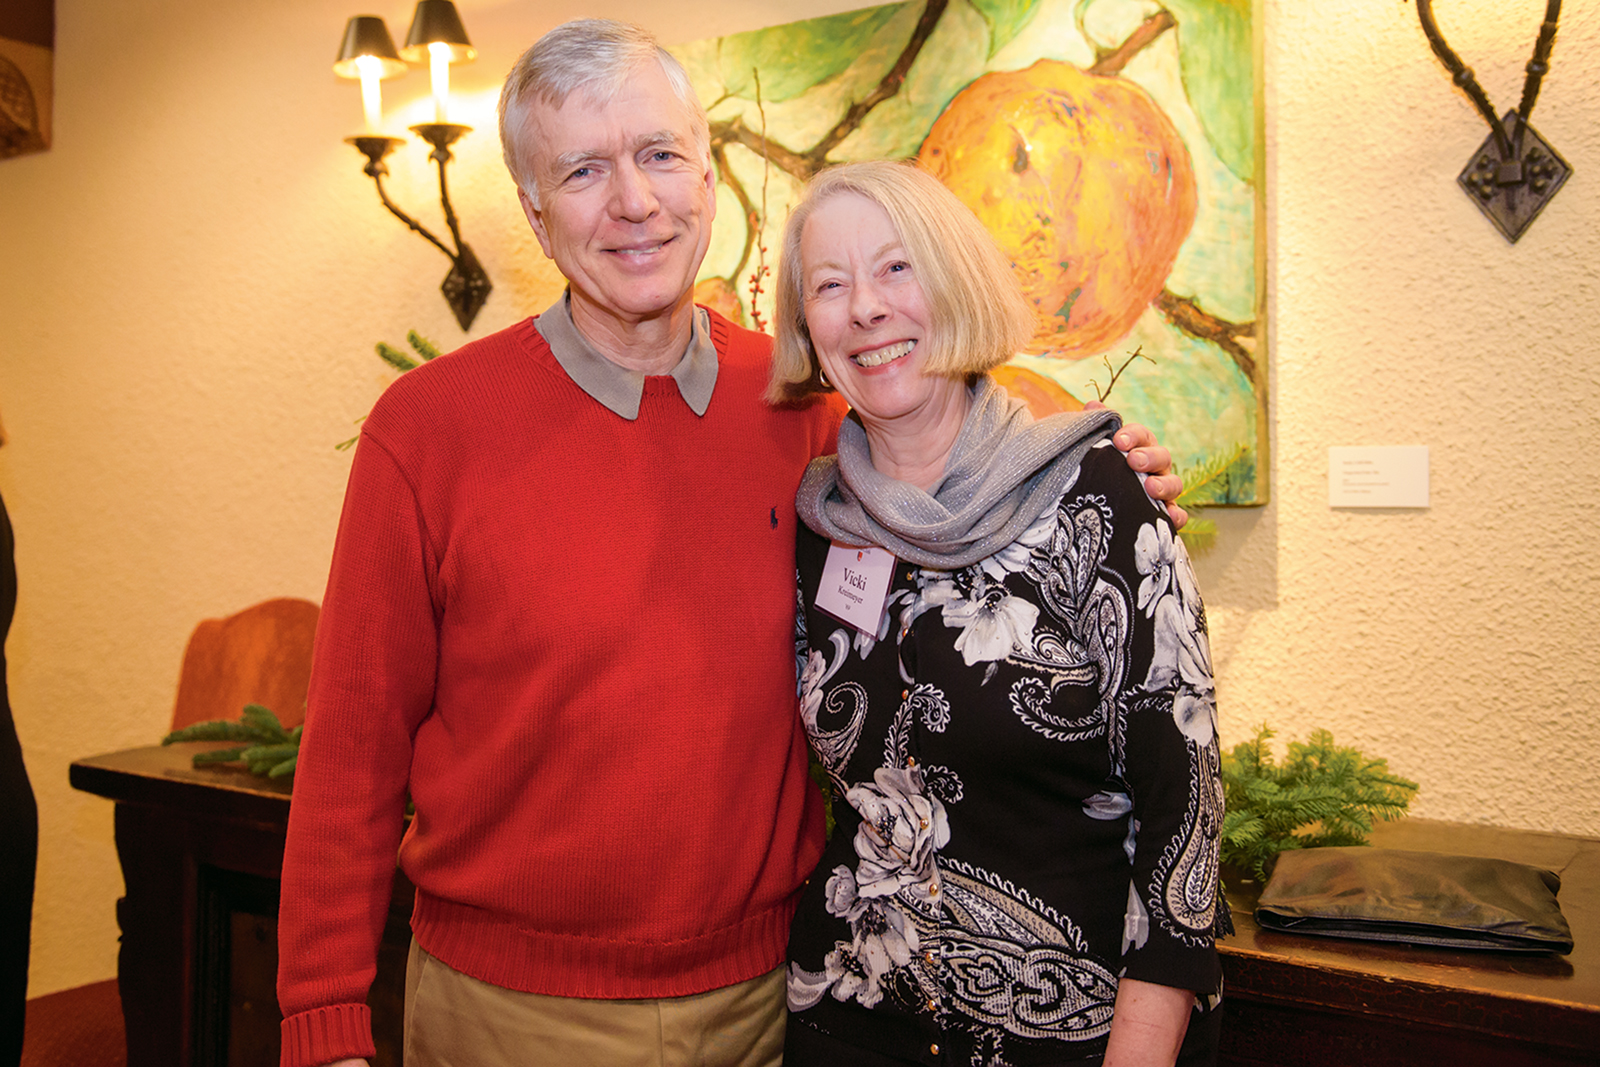 David Busby BS '70 and Vicki Kreimeyer BA '69.